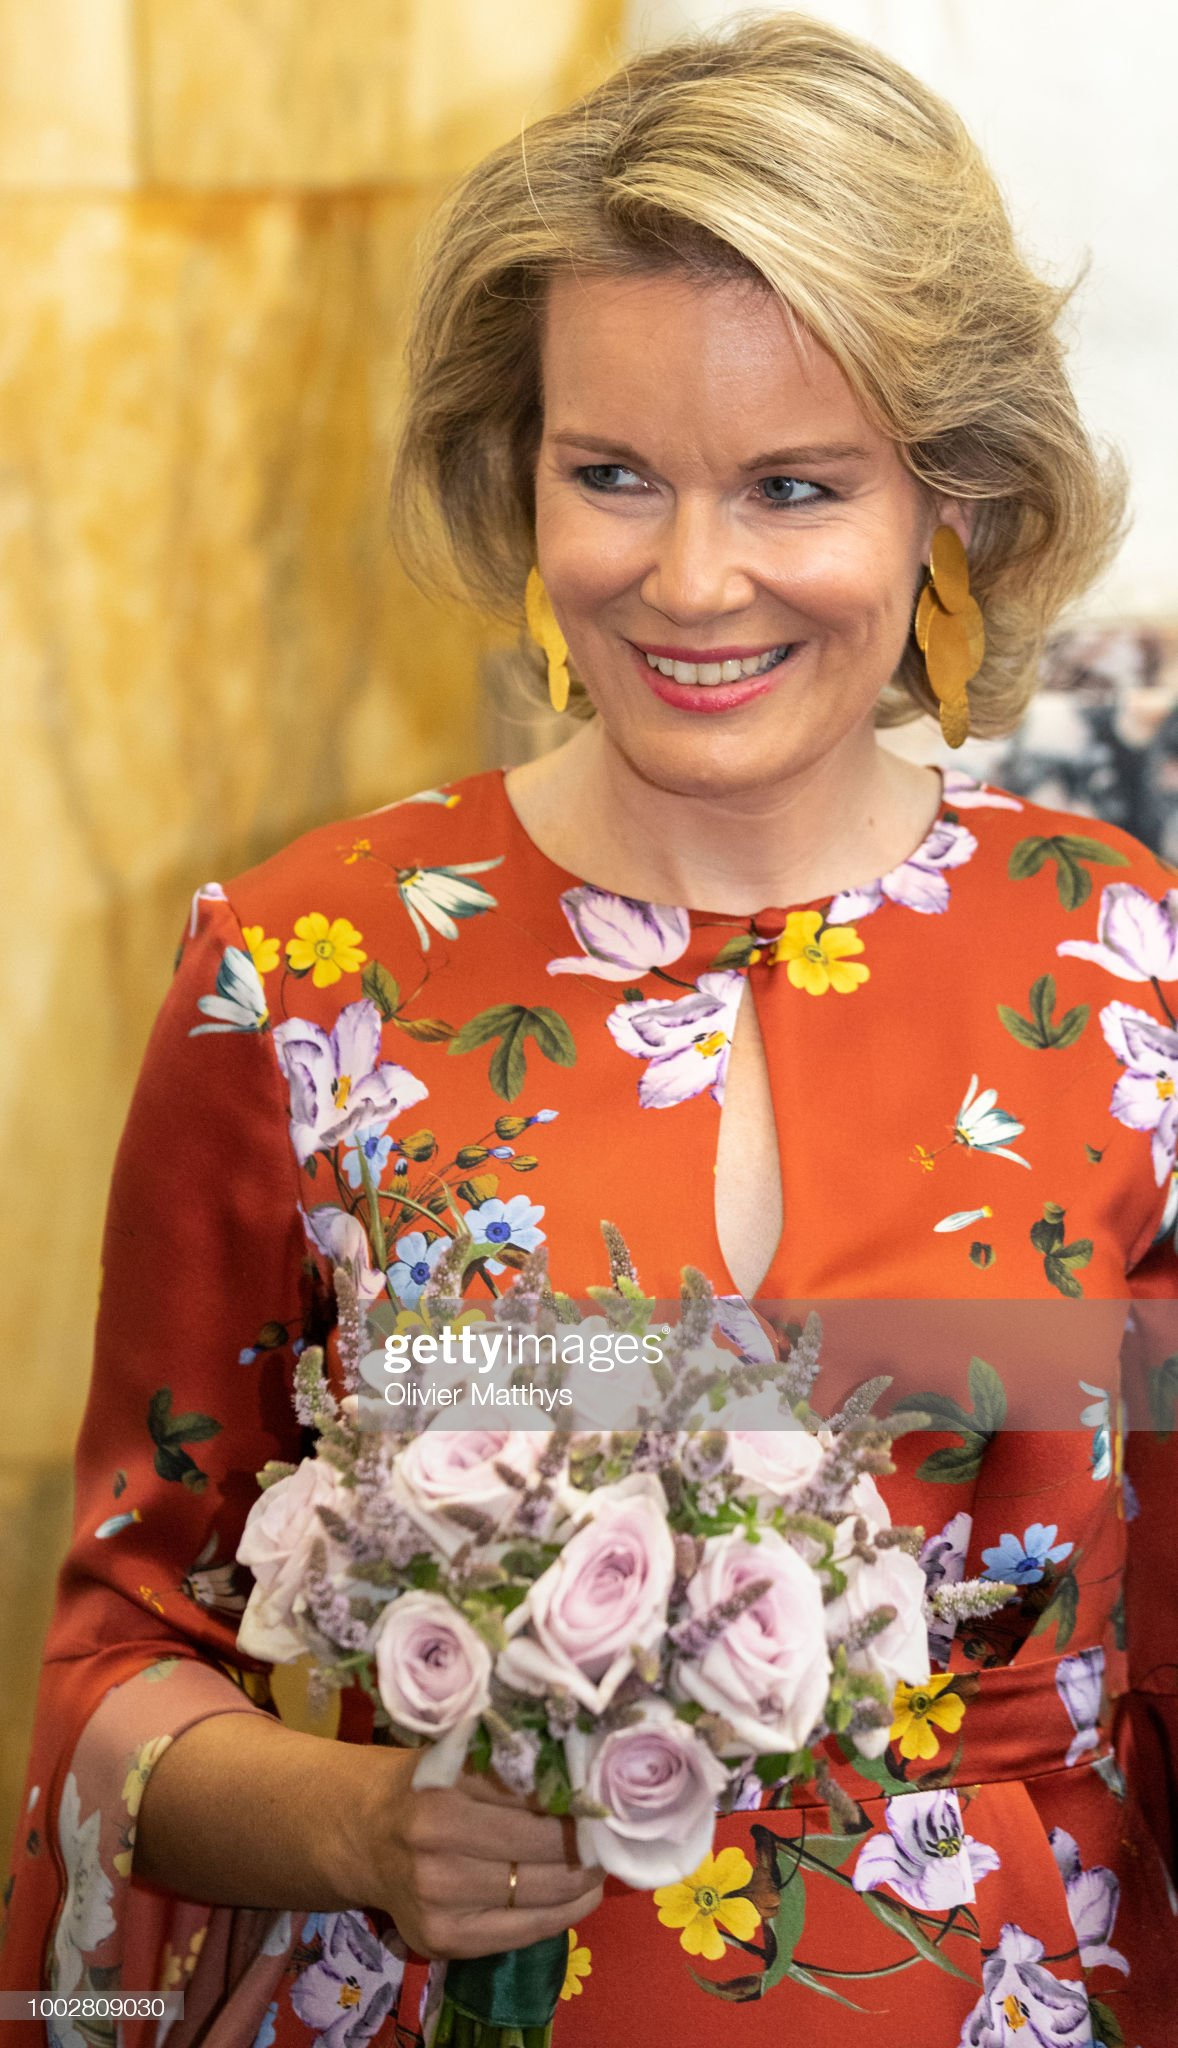 Вечерние наряды Королевы Матильды King Philip Of Belgium And Queen Mathilde Attend Concert Prelude To The National Day In Beaux-Arts Palace In Brussels : News Photo